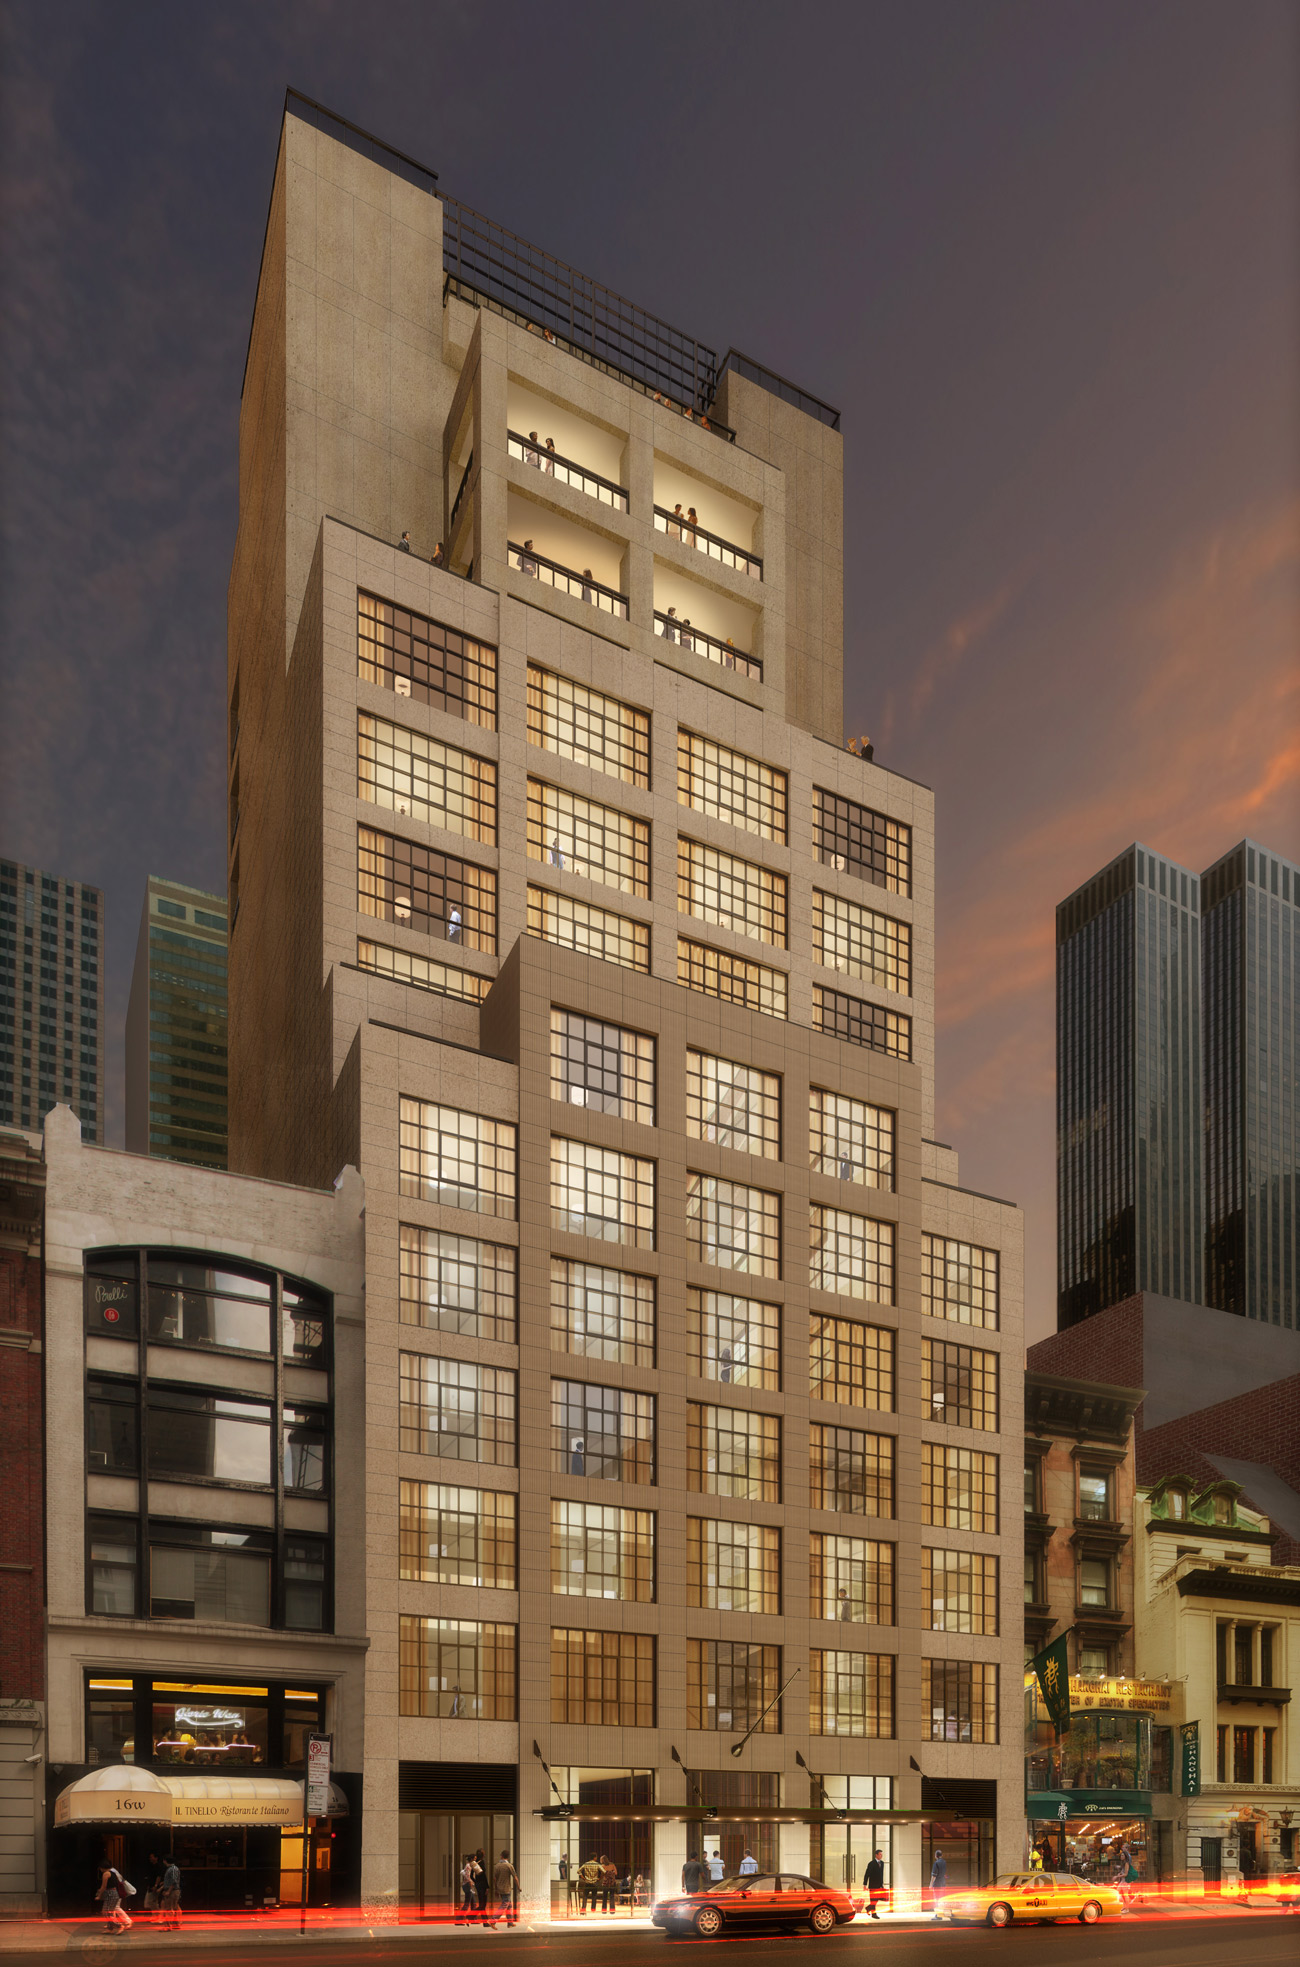 The Whibty Hotel: 18 W.56th St